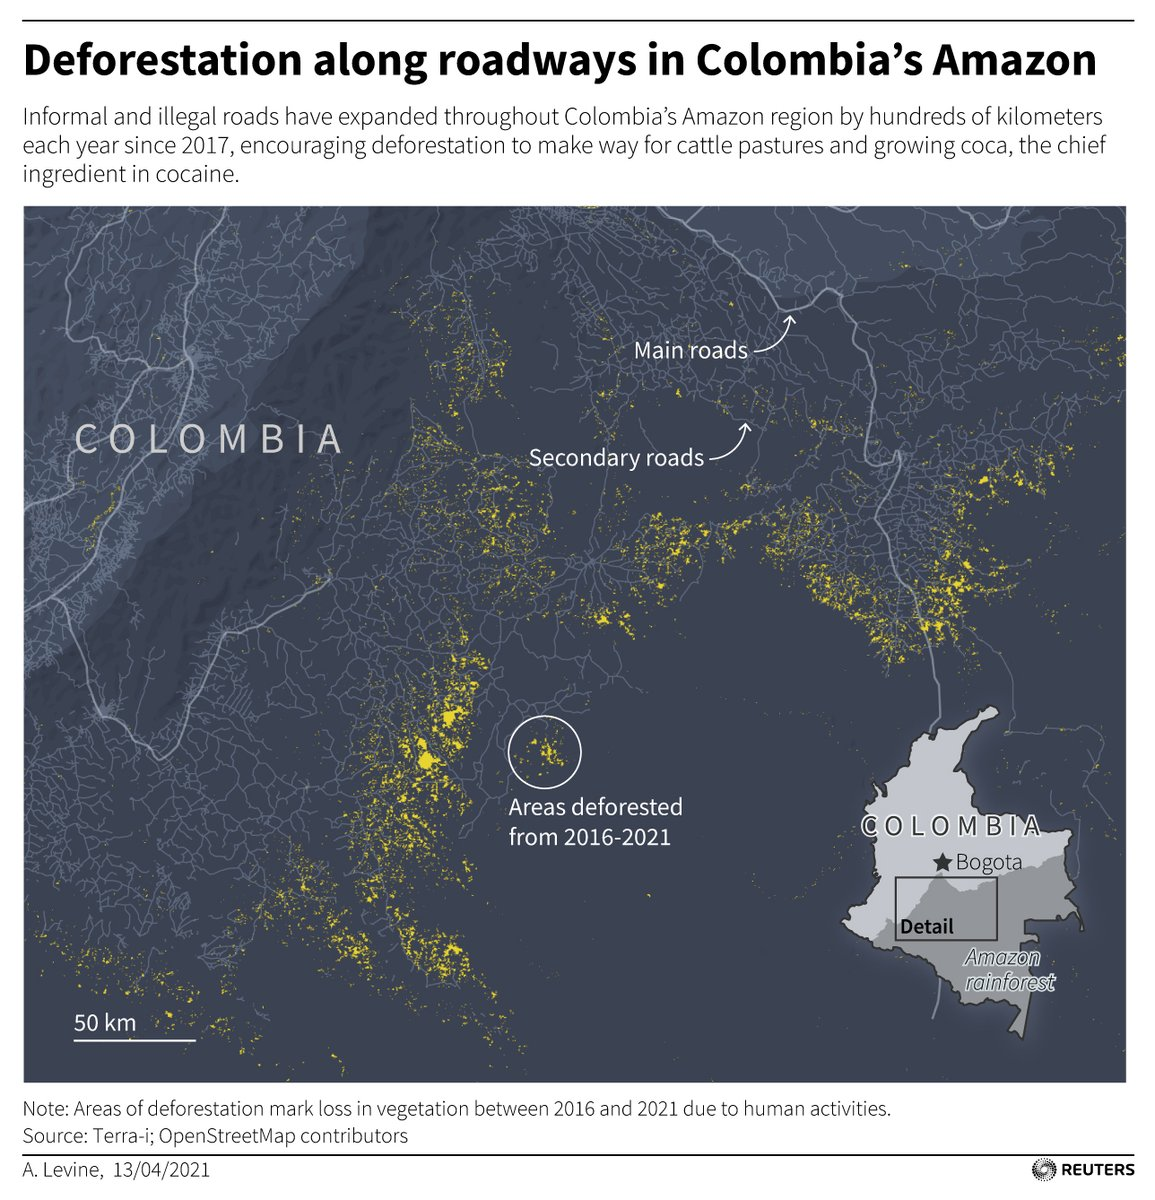 The construction of informal roadways in Colombia's Amazon have paved the way for deforestation in recent years. The full story from @OliGGriffin: https://t.co/NJbnfESJam https://t.co/DsCdH6HFcx